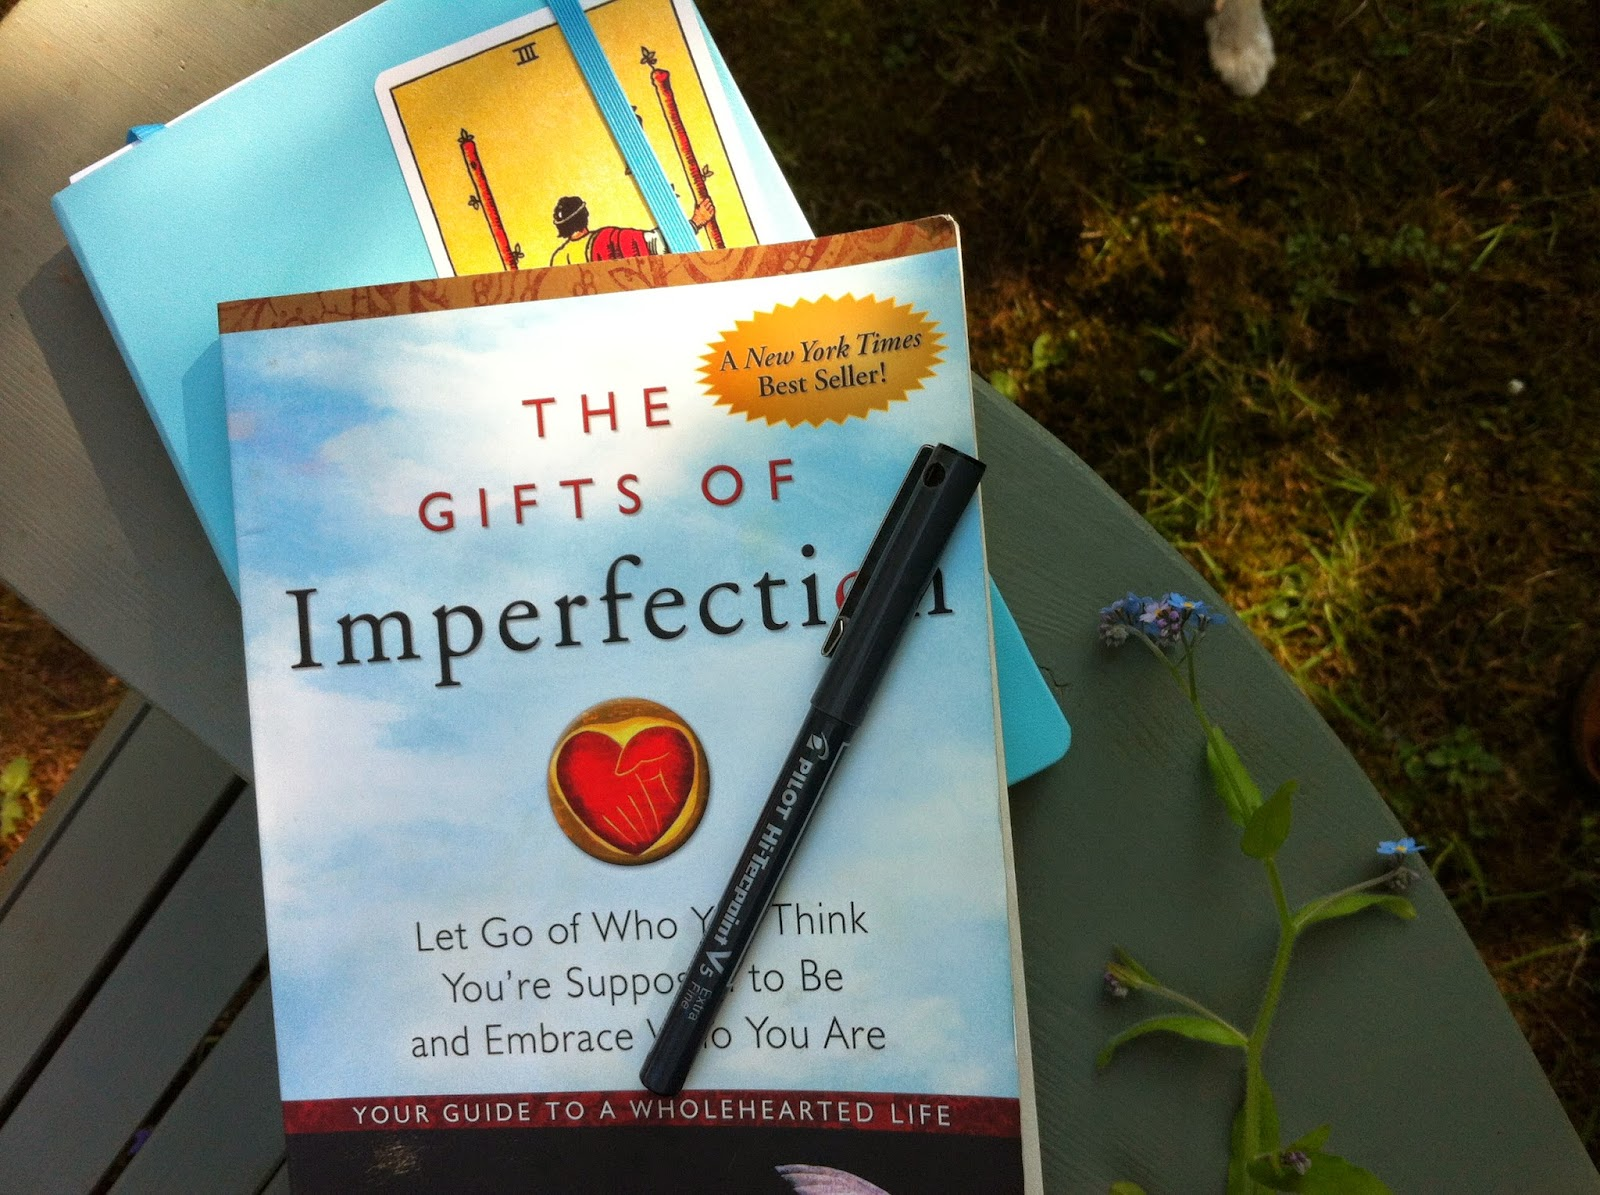 Brené Brown and me in the garden